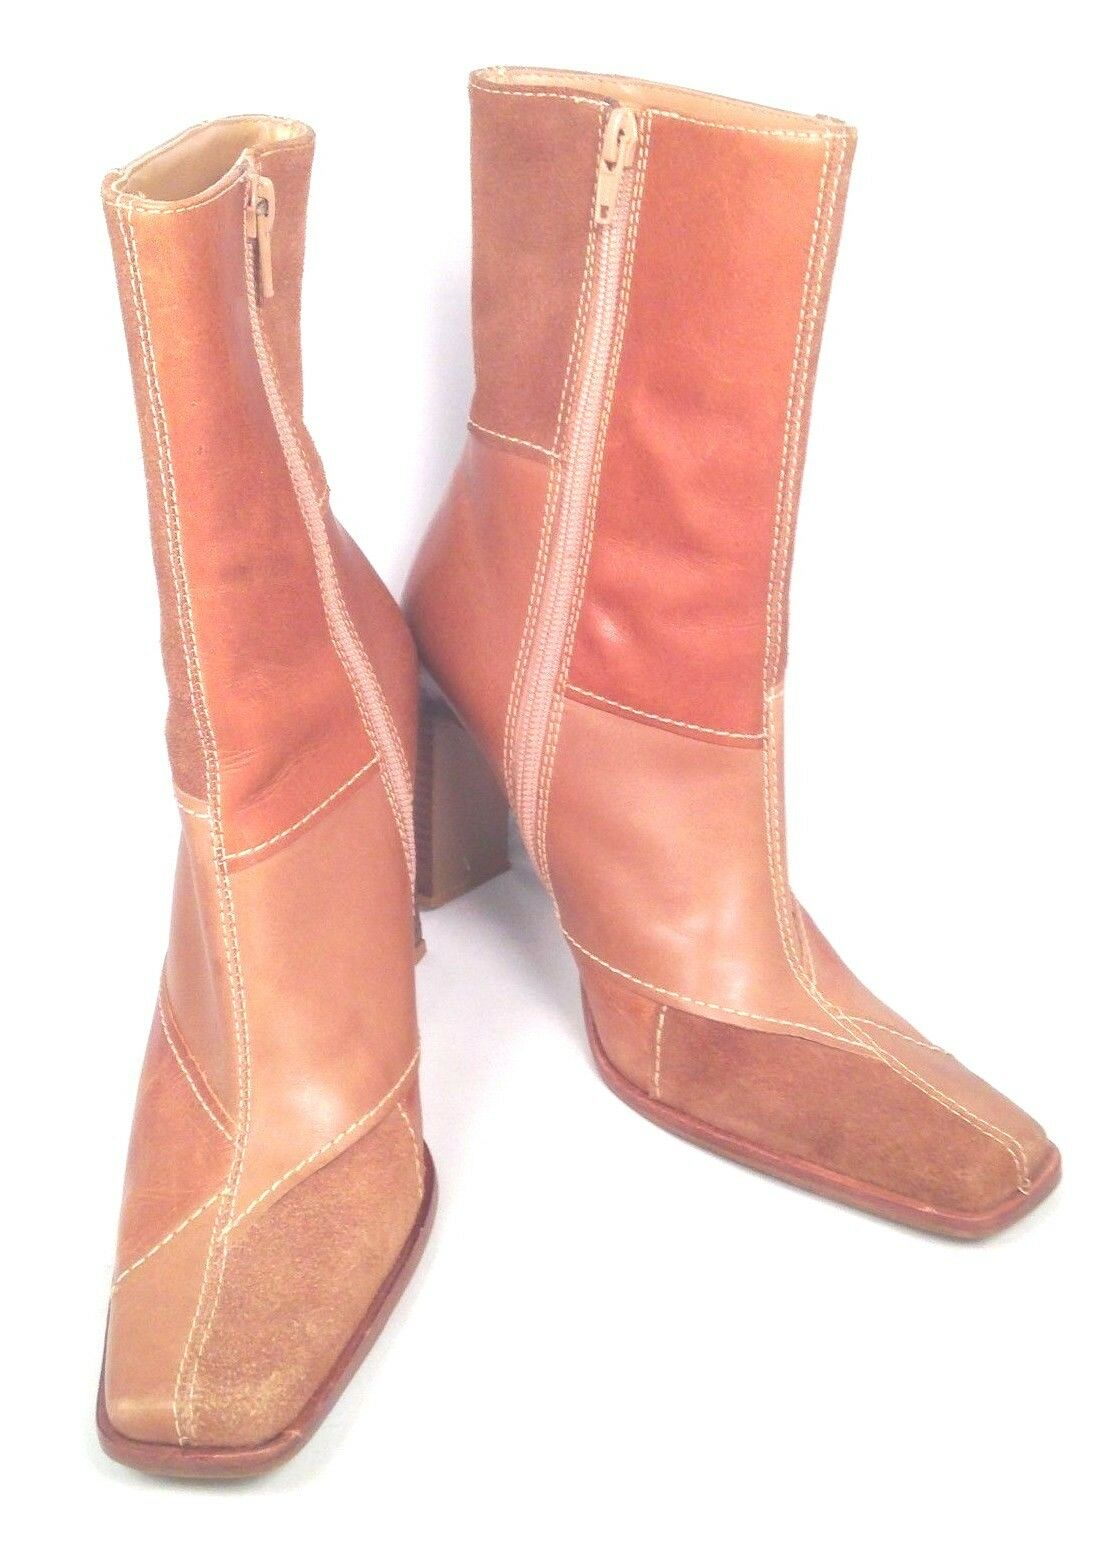 STEVE MADDEN JAVAA BROWN LEATHER & SUEDE FASHION ANKLE BOOTS WOMENS 7 B EUC